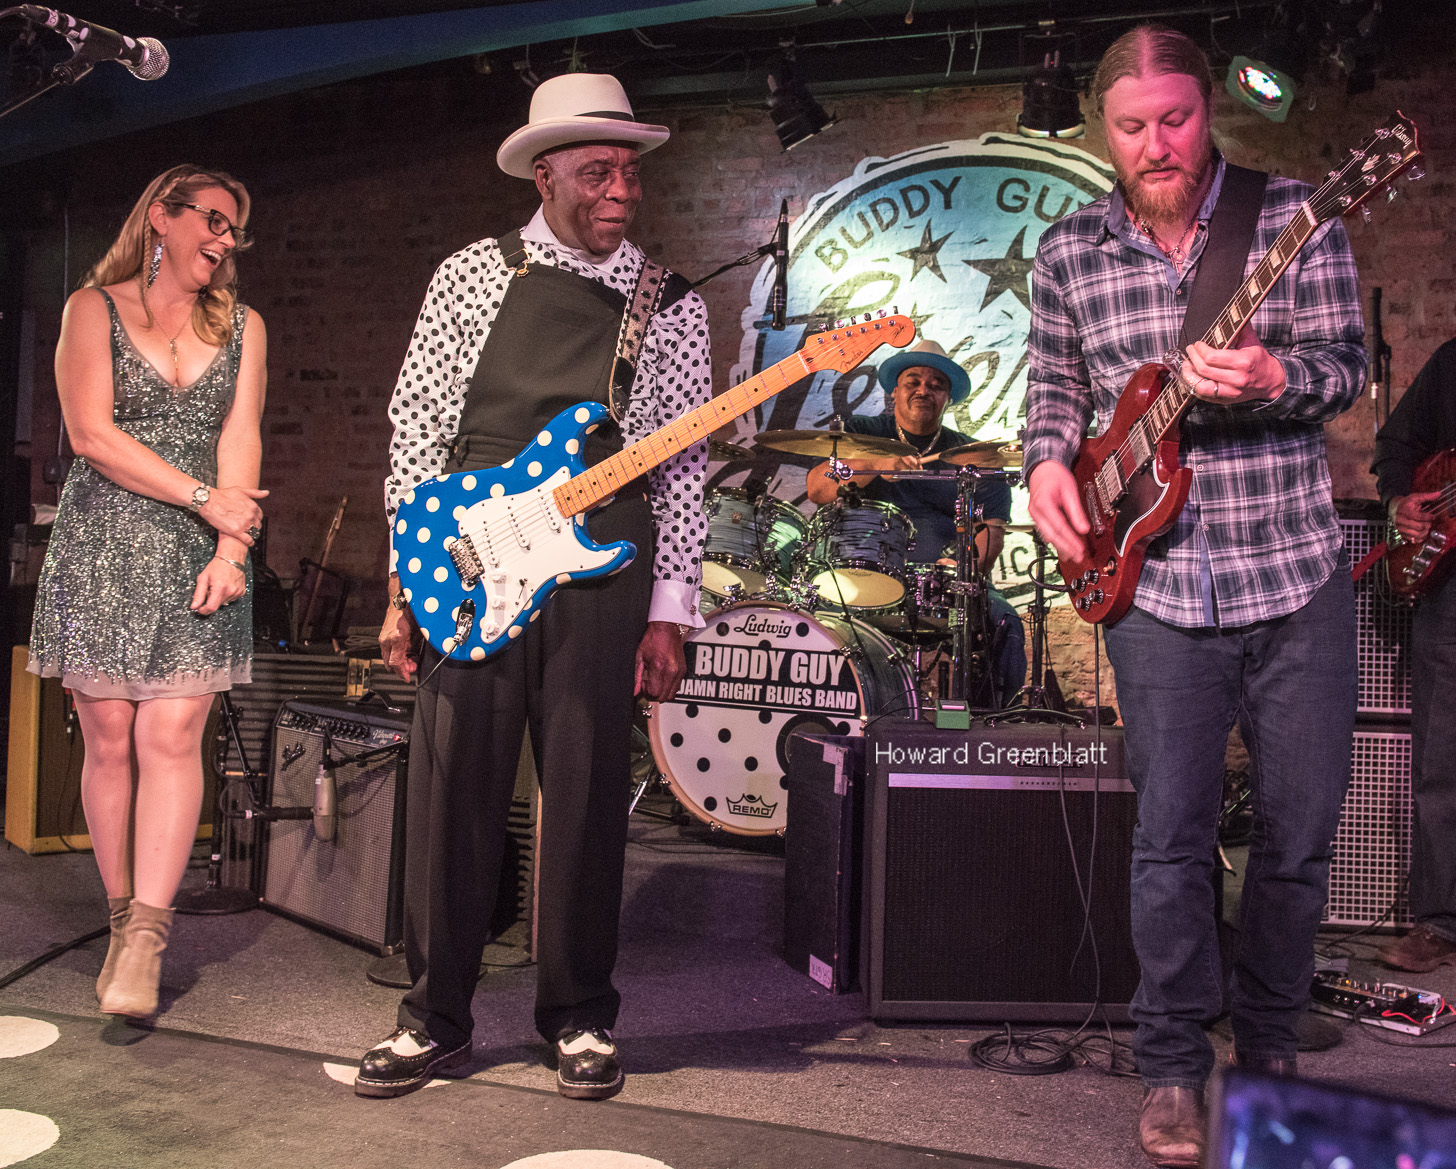 PHOTOS / VIDEO | Derek & Susan Join Buddy Guy Late Night at Legends 1/21/17